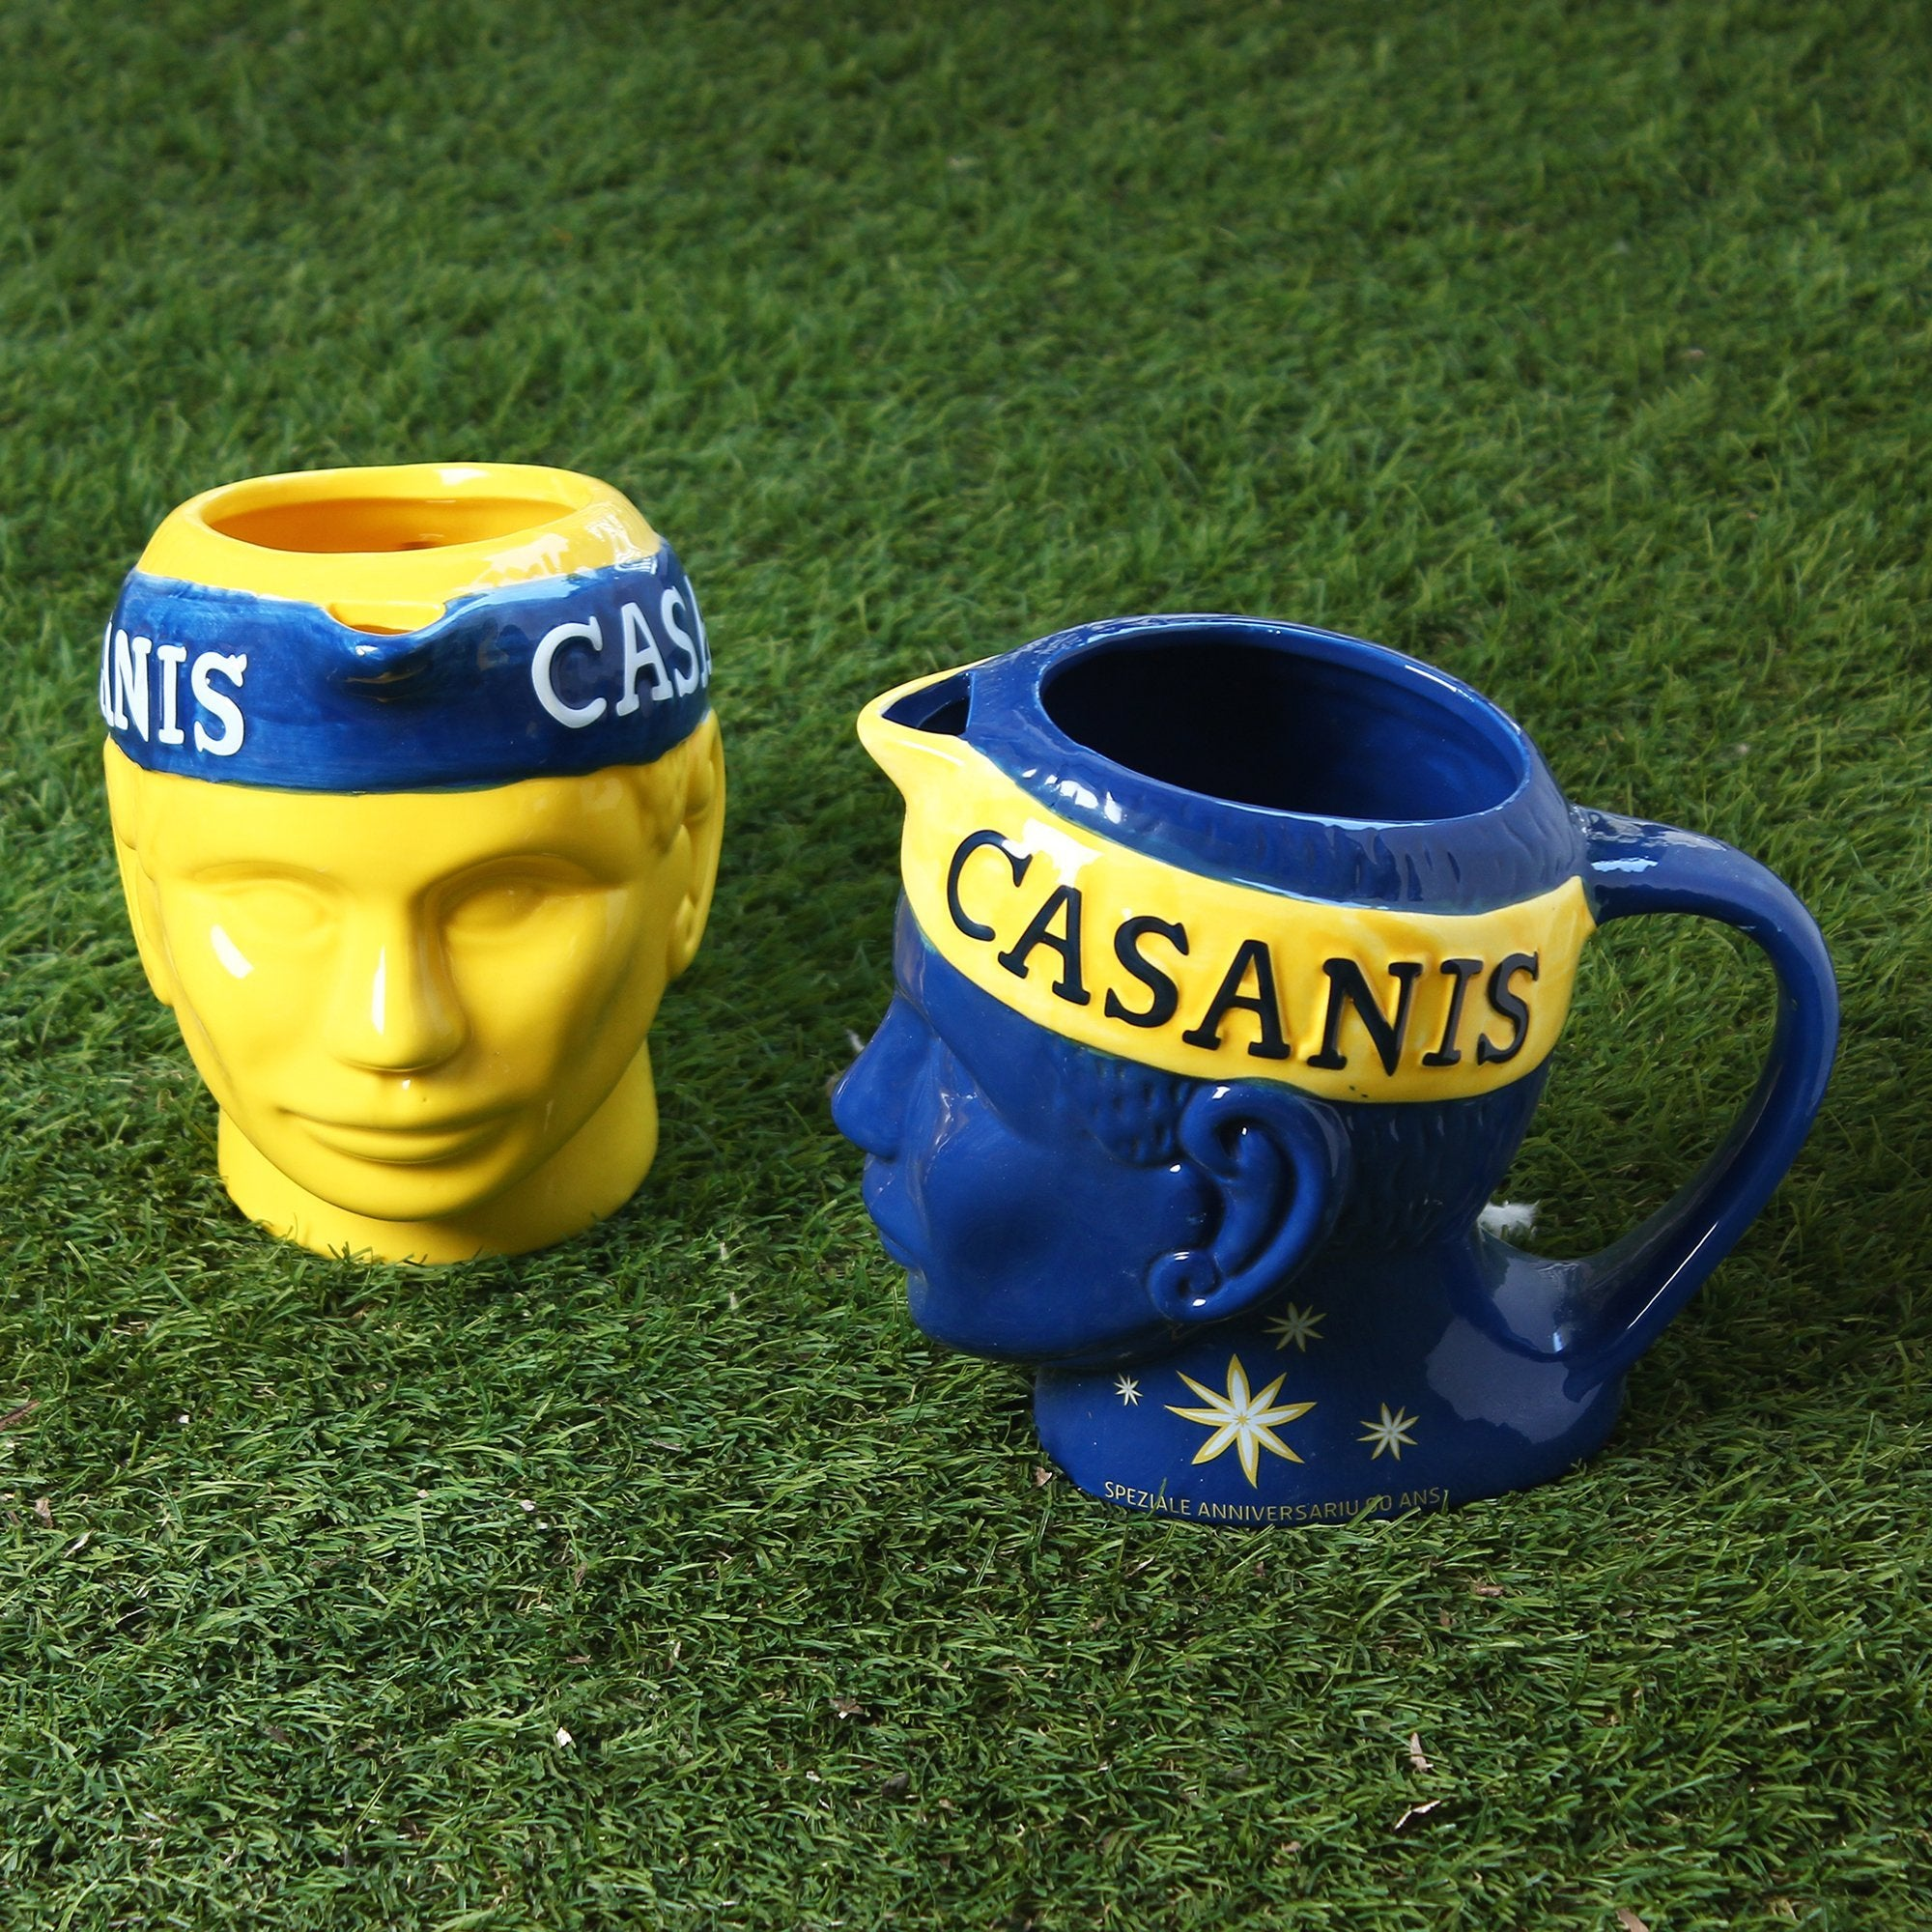 Jug & Planter With Casanis Headband